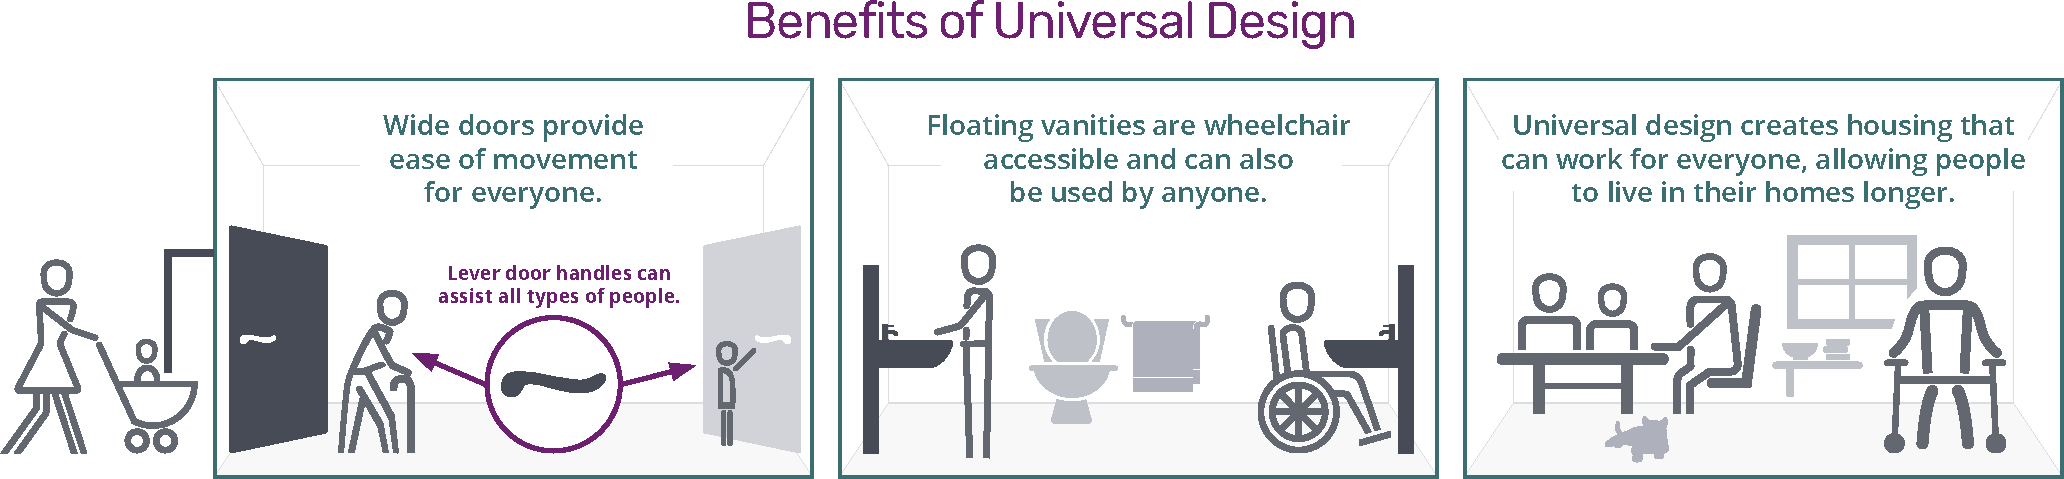 Benefits of Universal Design